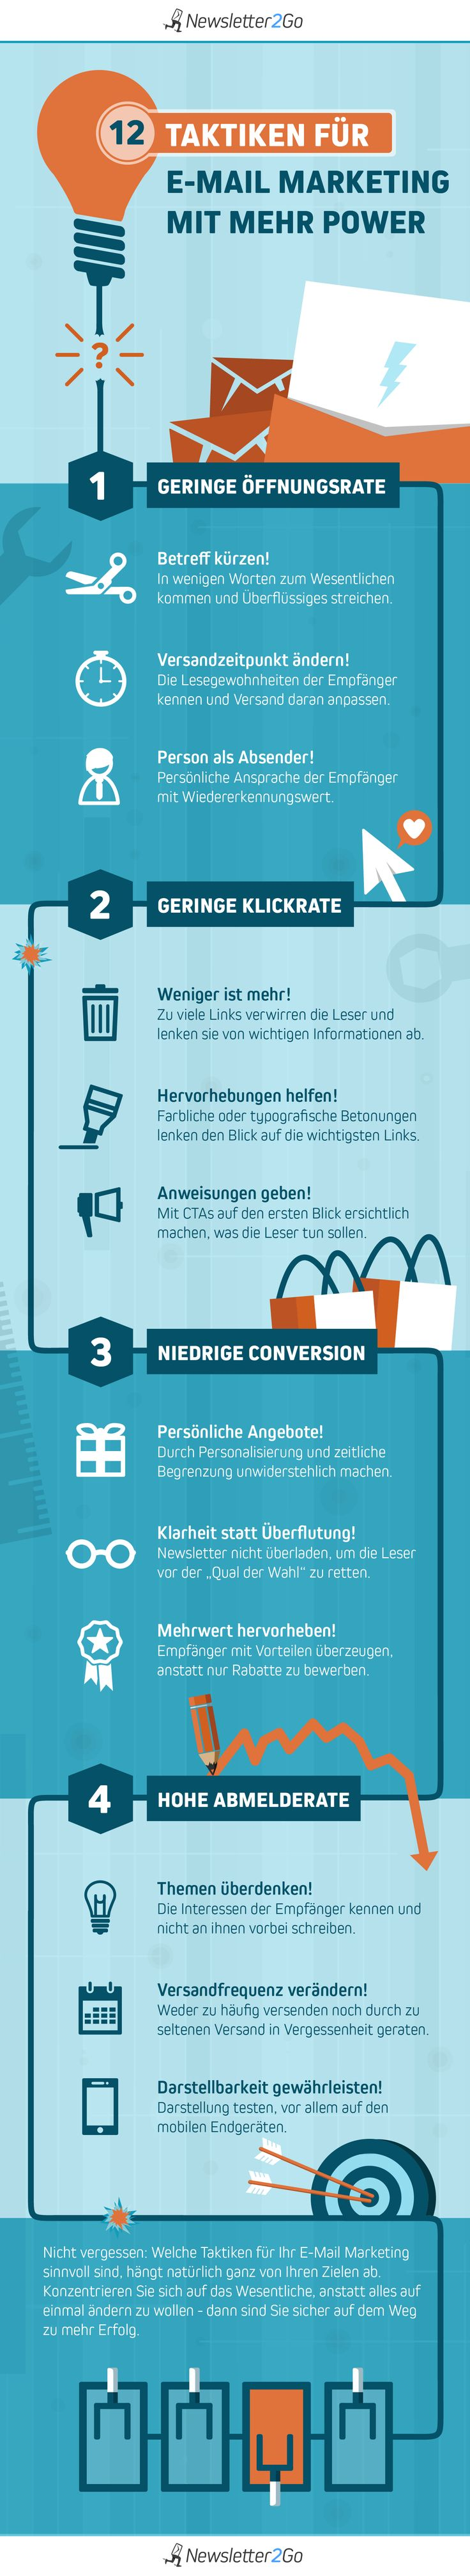 Wie kann man durch Tracking sein Email Marketing optimieren? 12 Taktiken für E-Mail Marketing mit mehr Power in der Infografik.